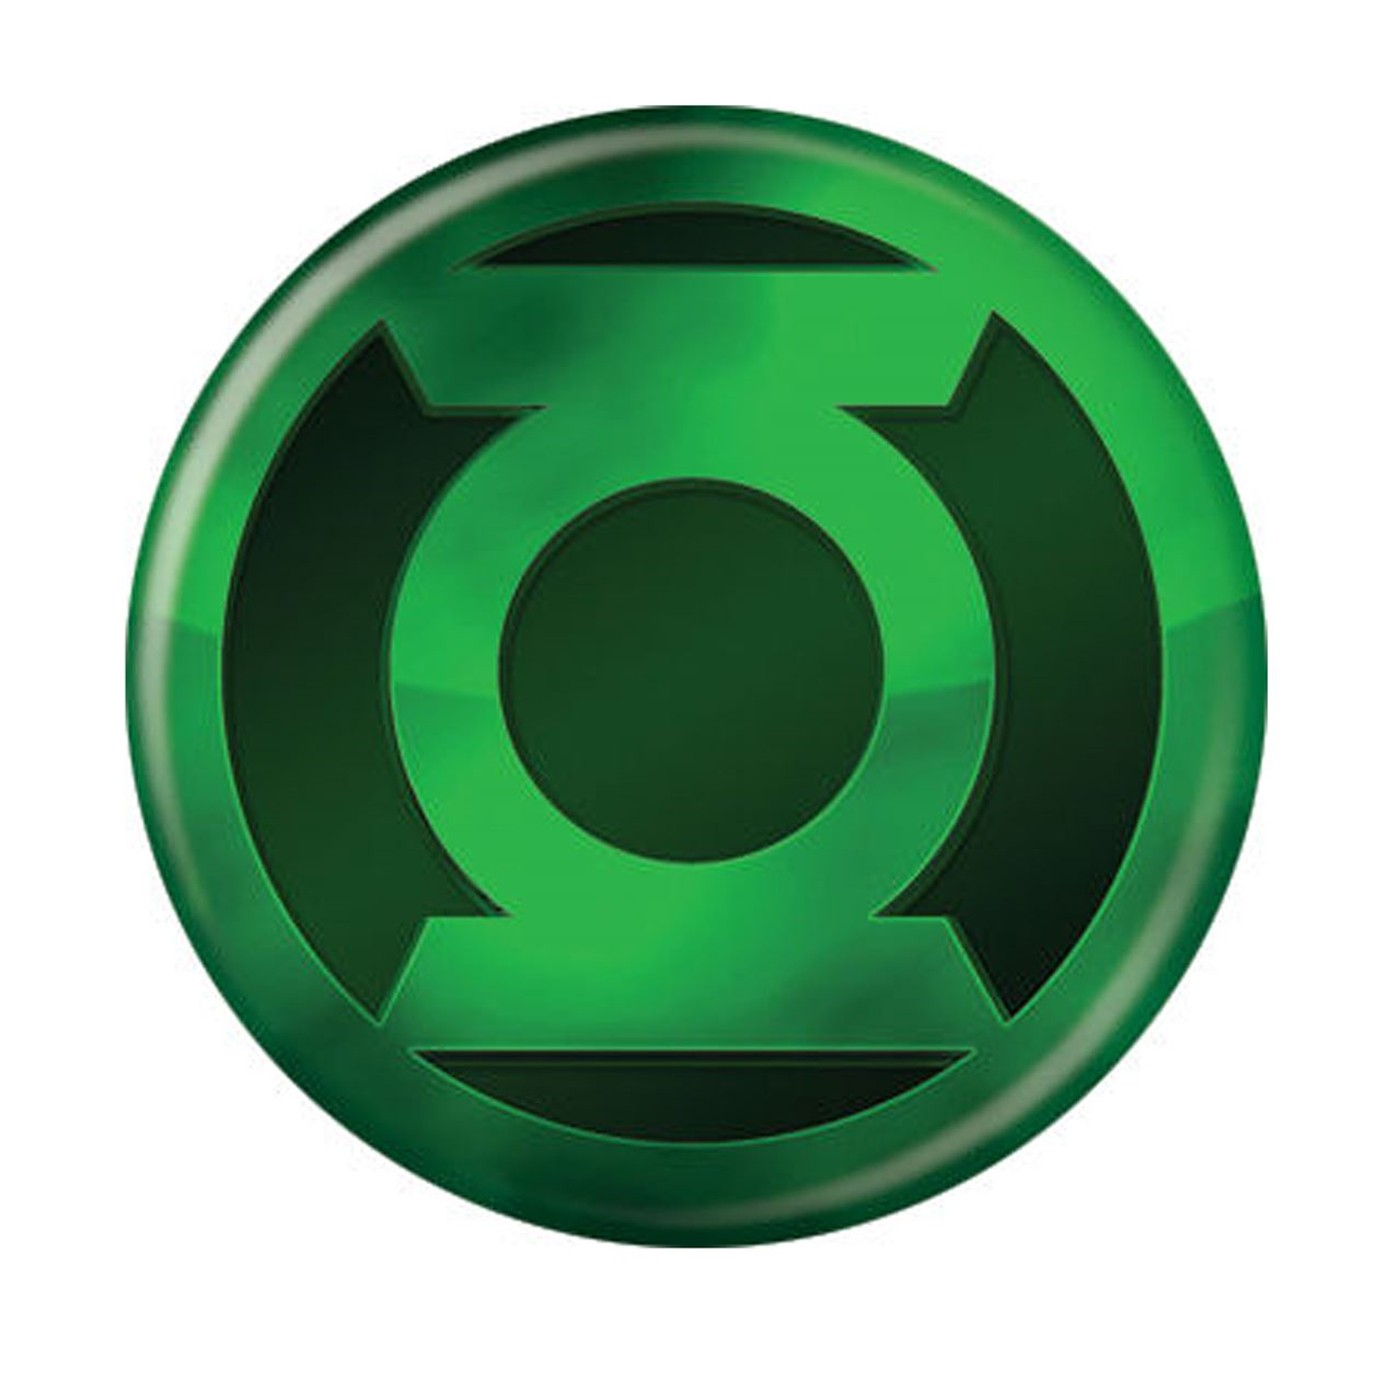 Green Lantern Corps Symbol Button